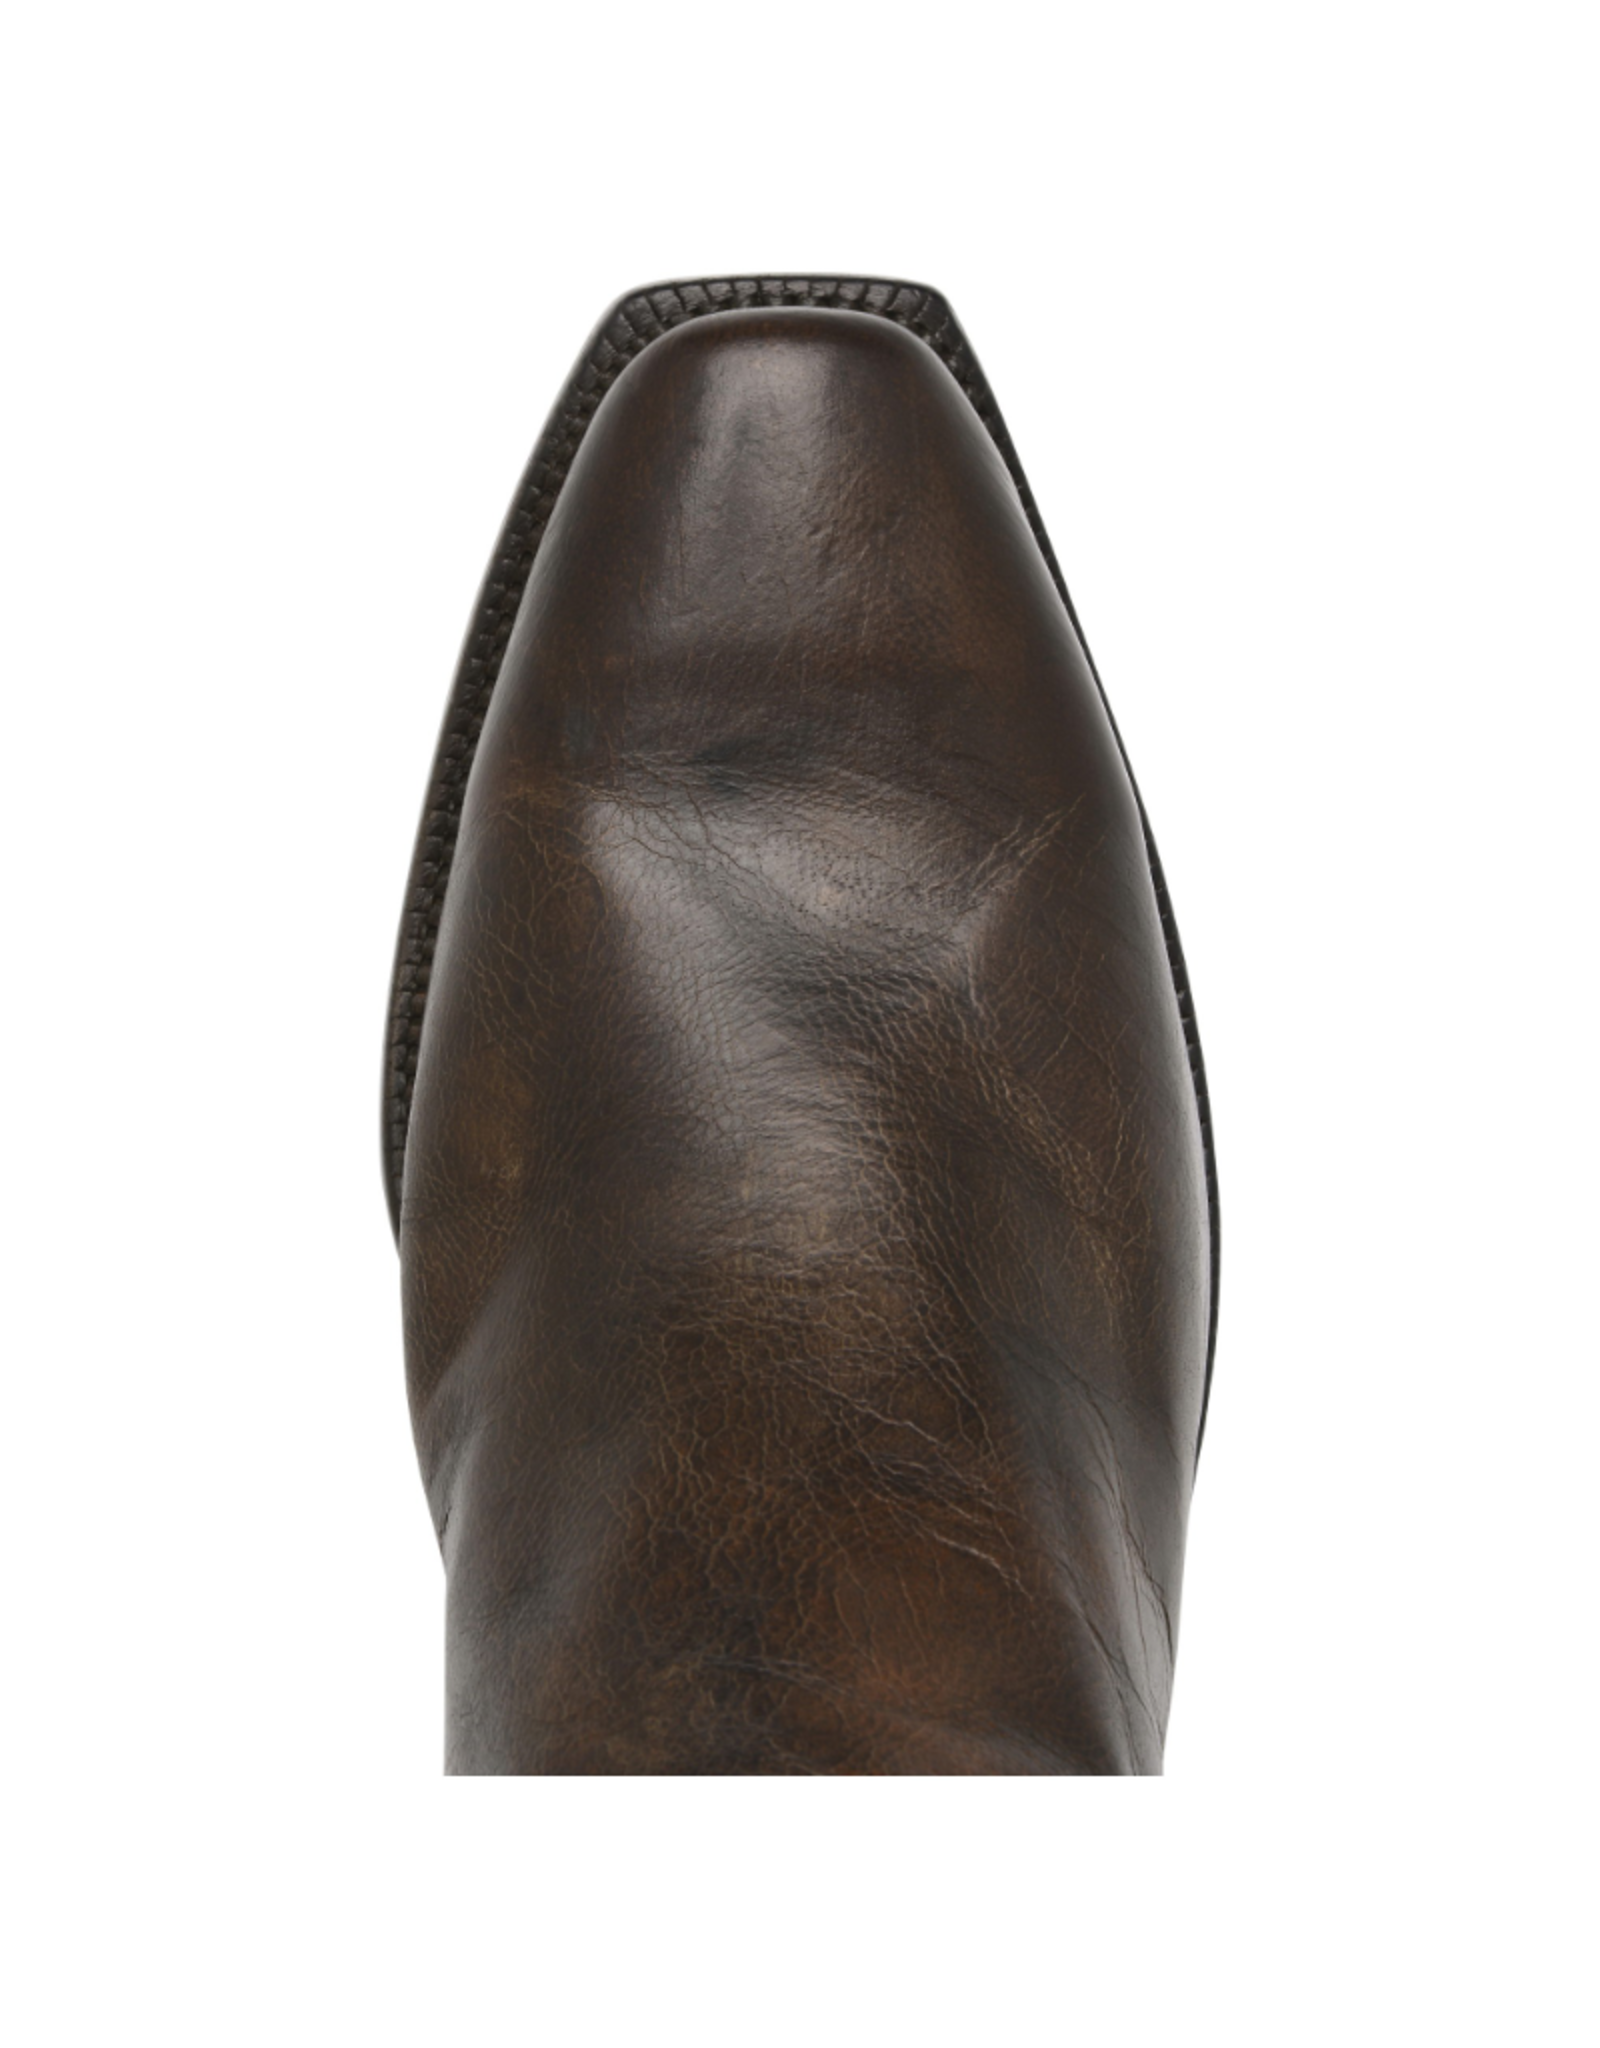 Lucchese Leadville, Mad Dog Goat Boots